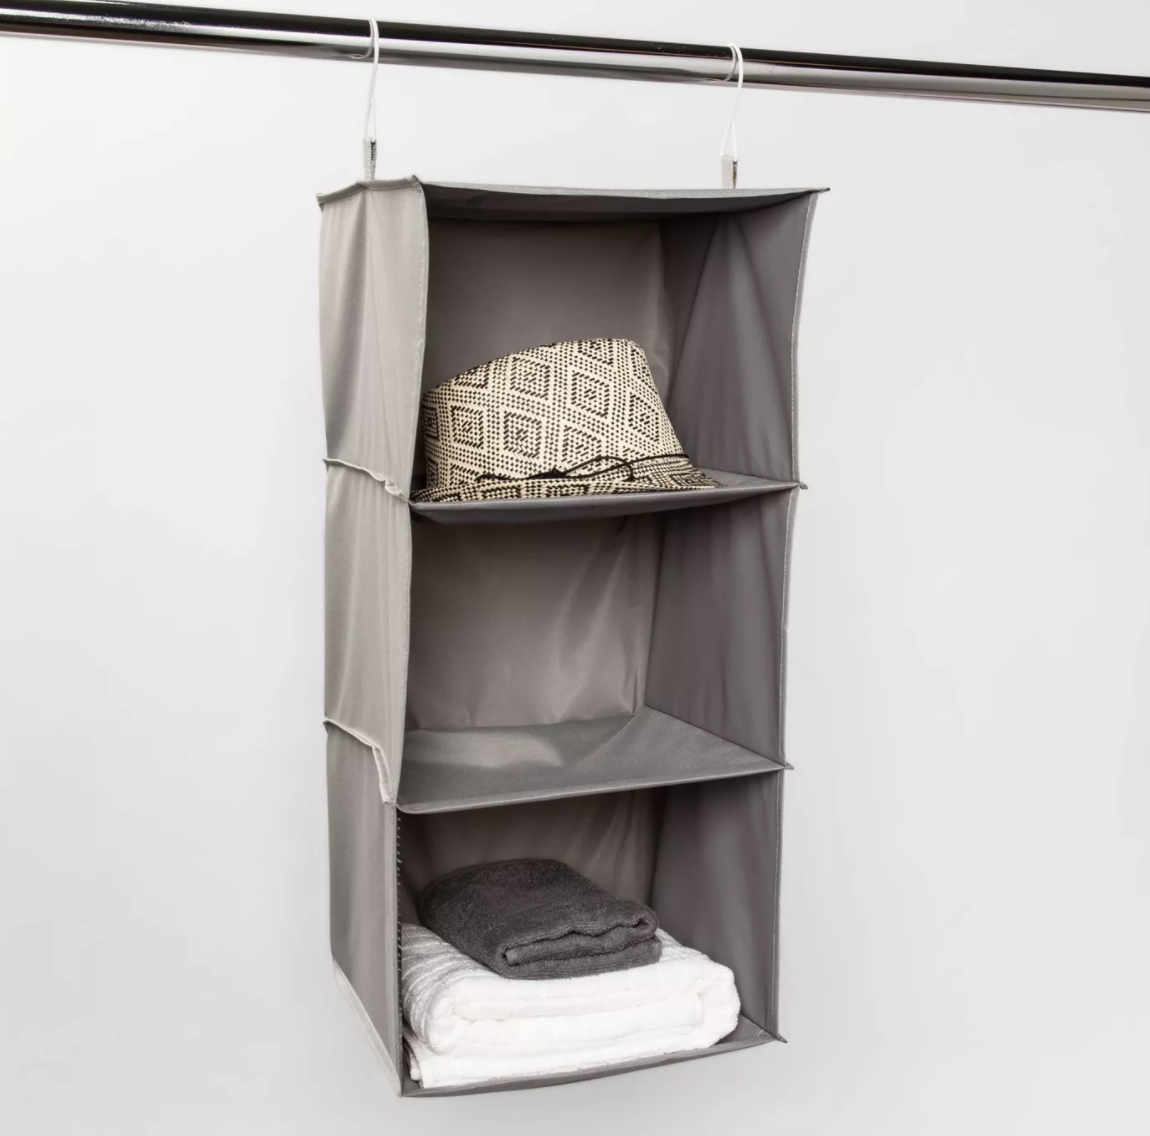 Gray three-shelf hanging organizer with a patterned fedora and folded towels